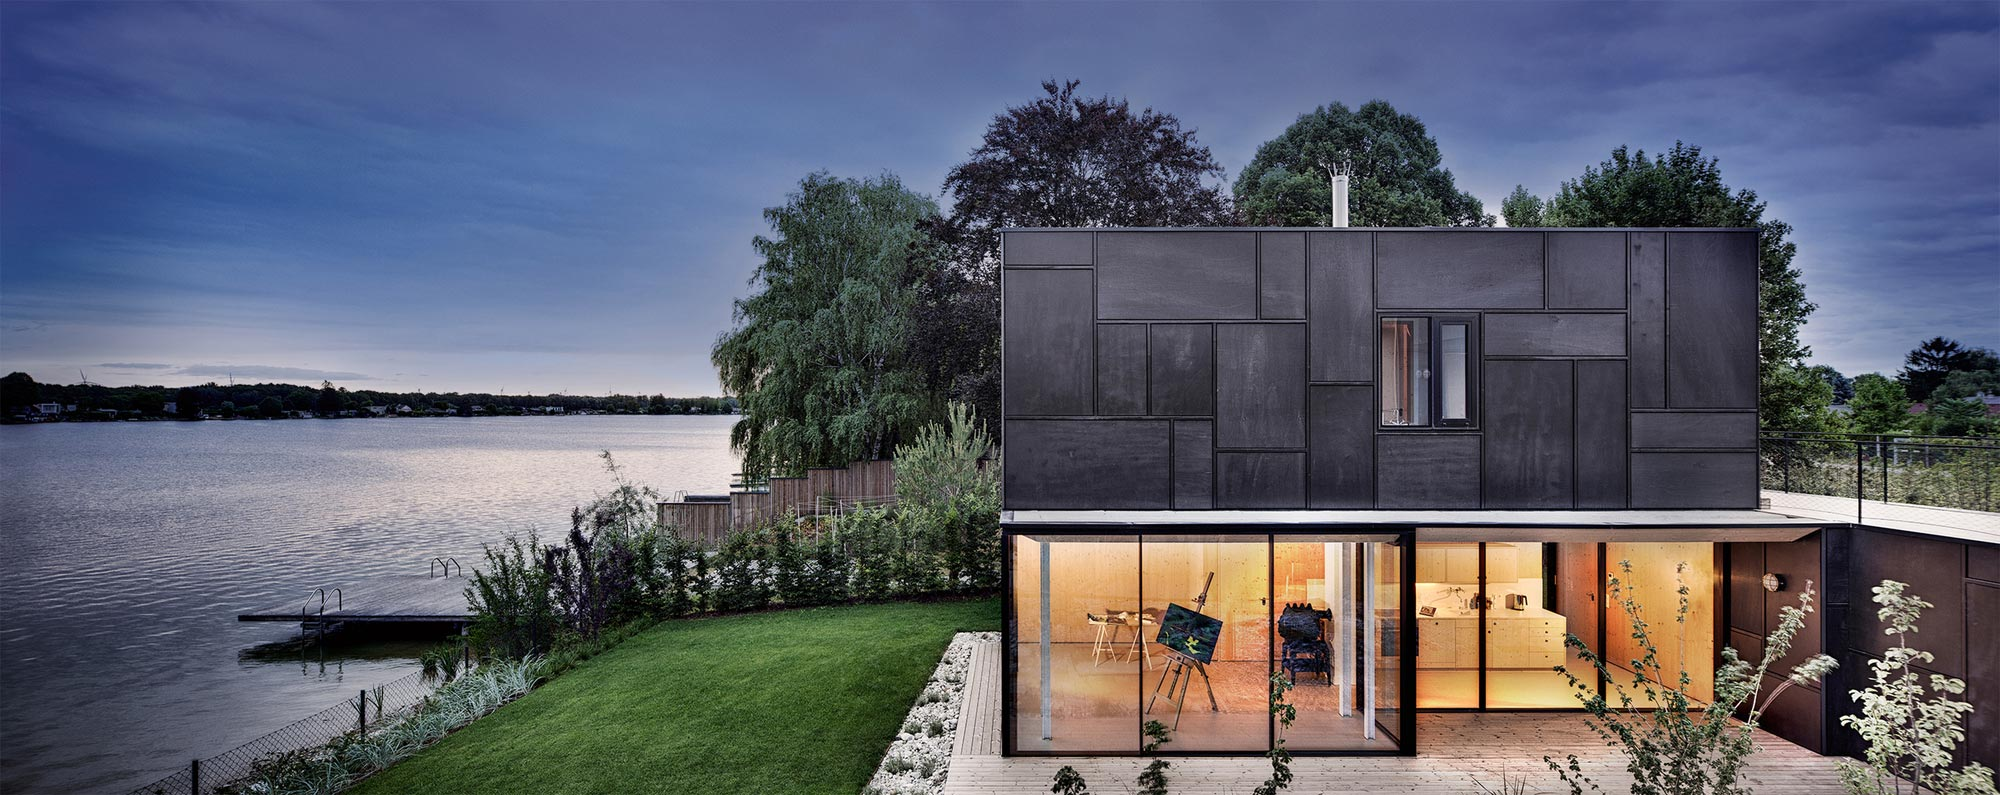 horseshoe shaped lake home by maximilian eisenk ck caandesign architecture and home design blog. Black Bedroom Furniture Sets. Home Design Ideas